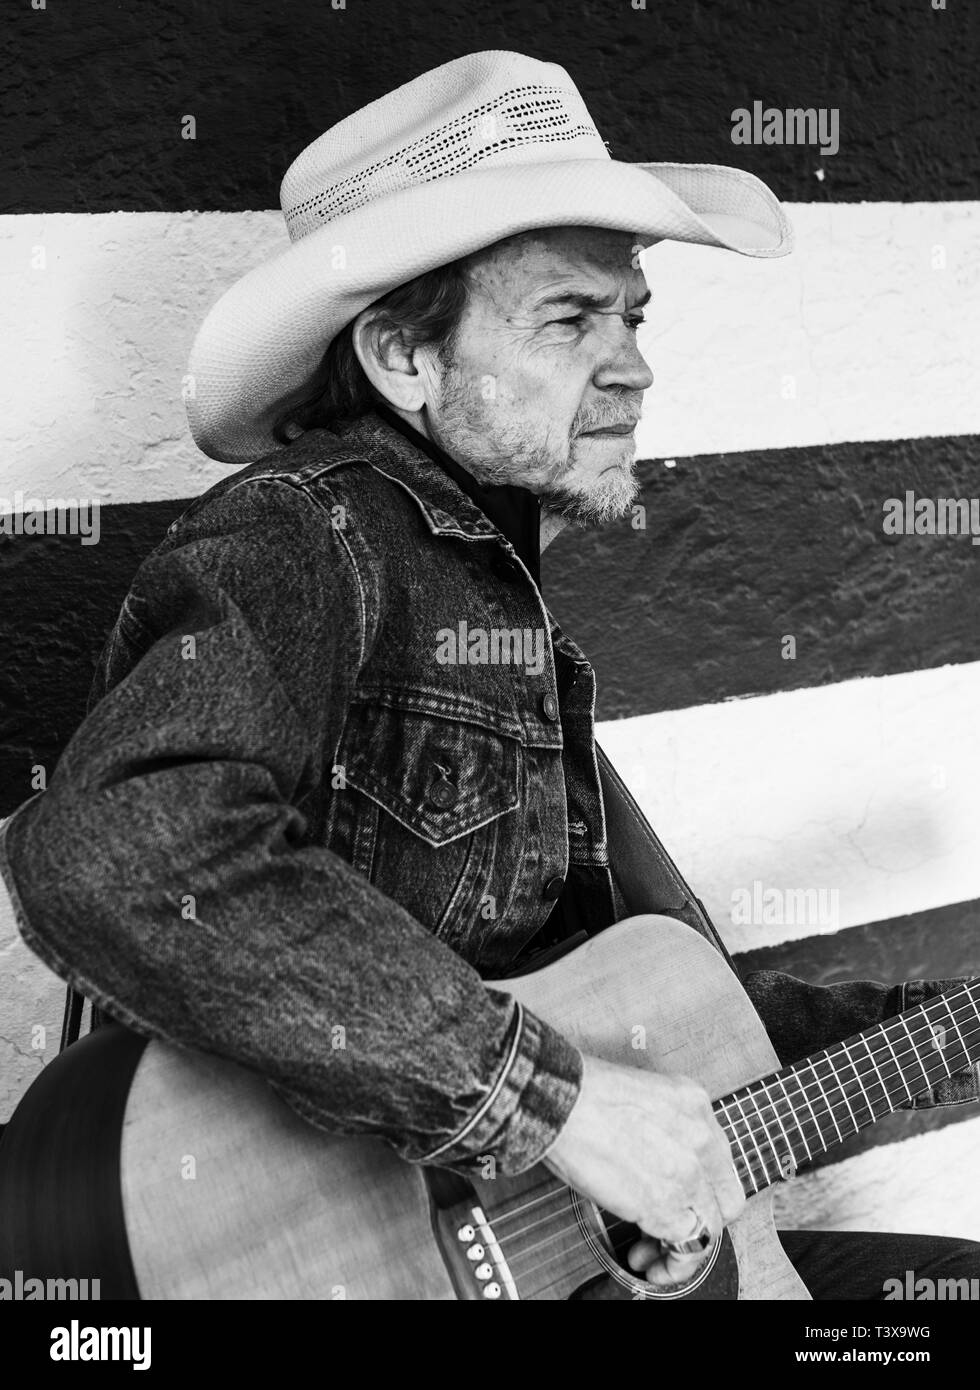 8c13d694370 Old cowboy with cowboy hat and gray beard plays a guitar while standing  next to a